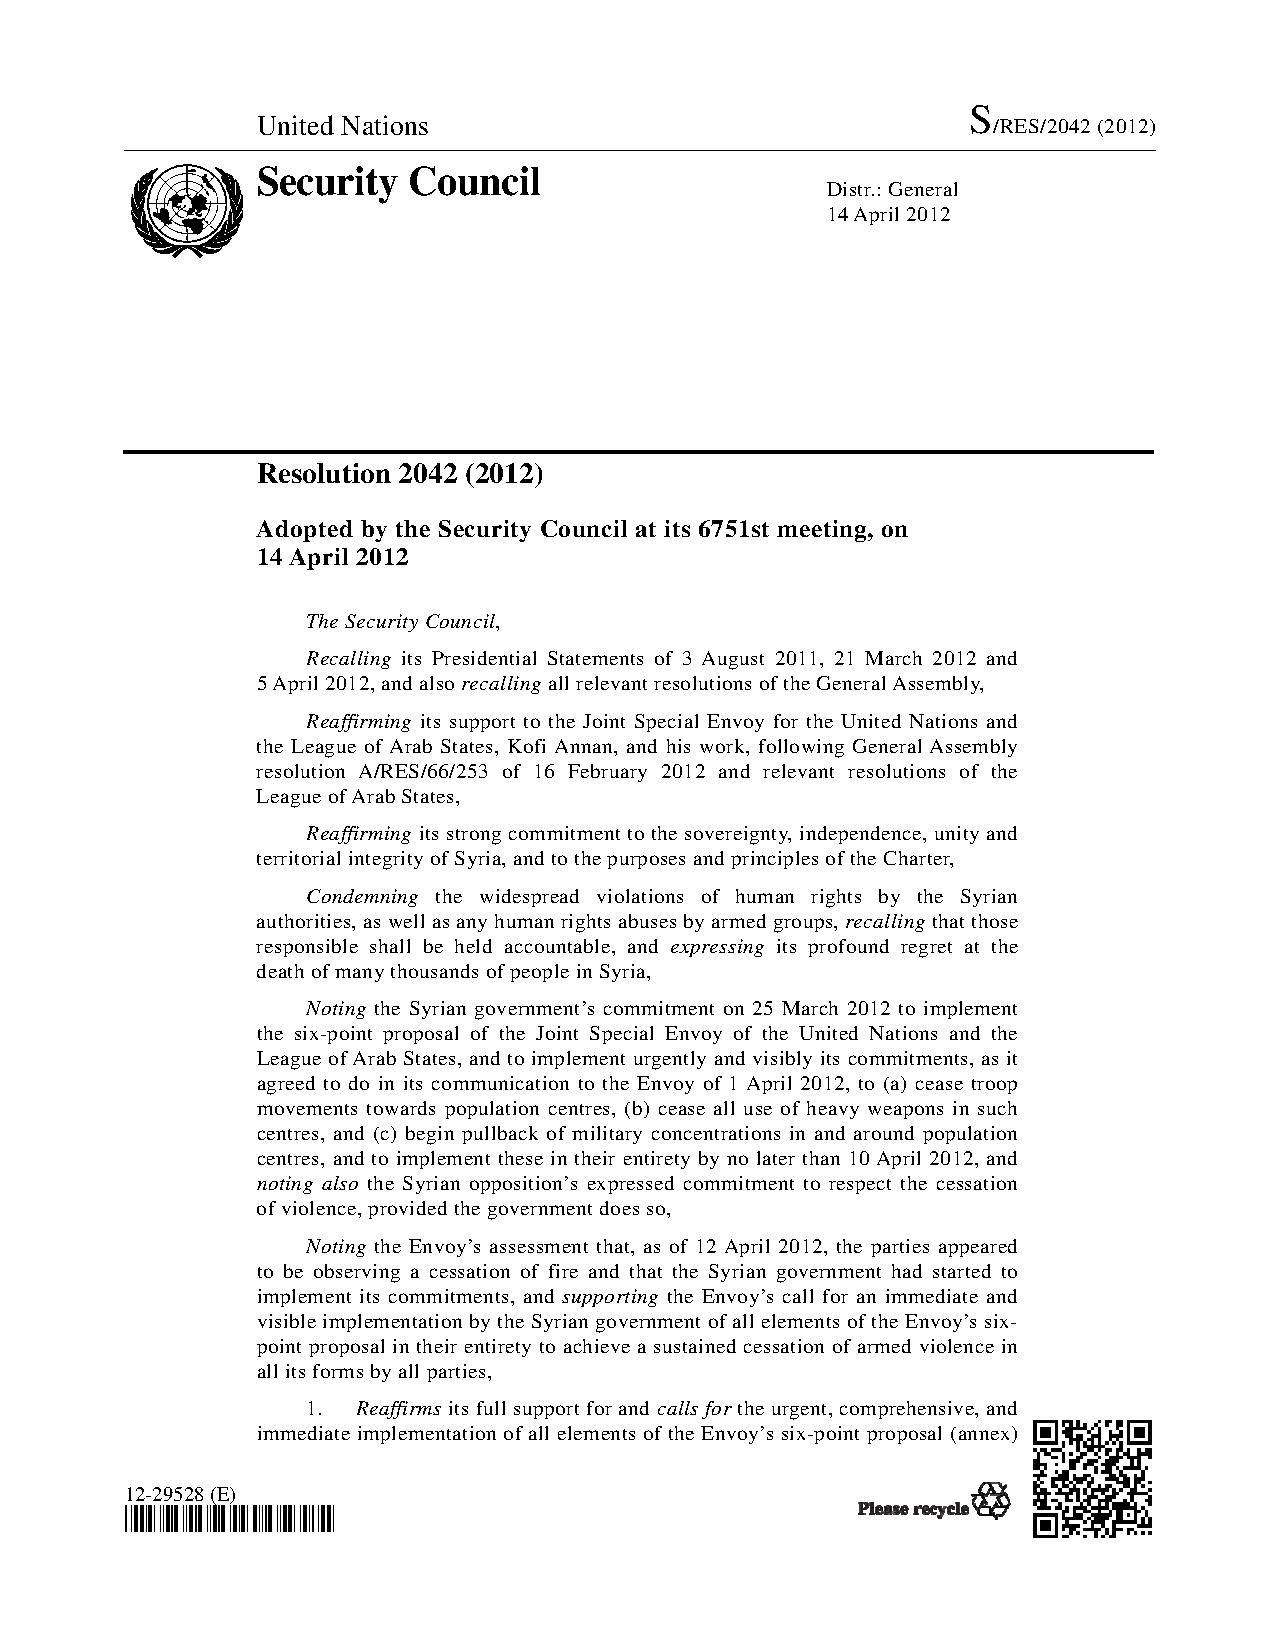 File:United Nations Security Council Resolution 2042.pdf